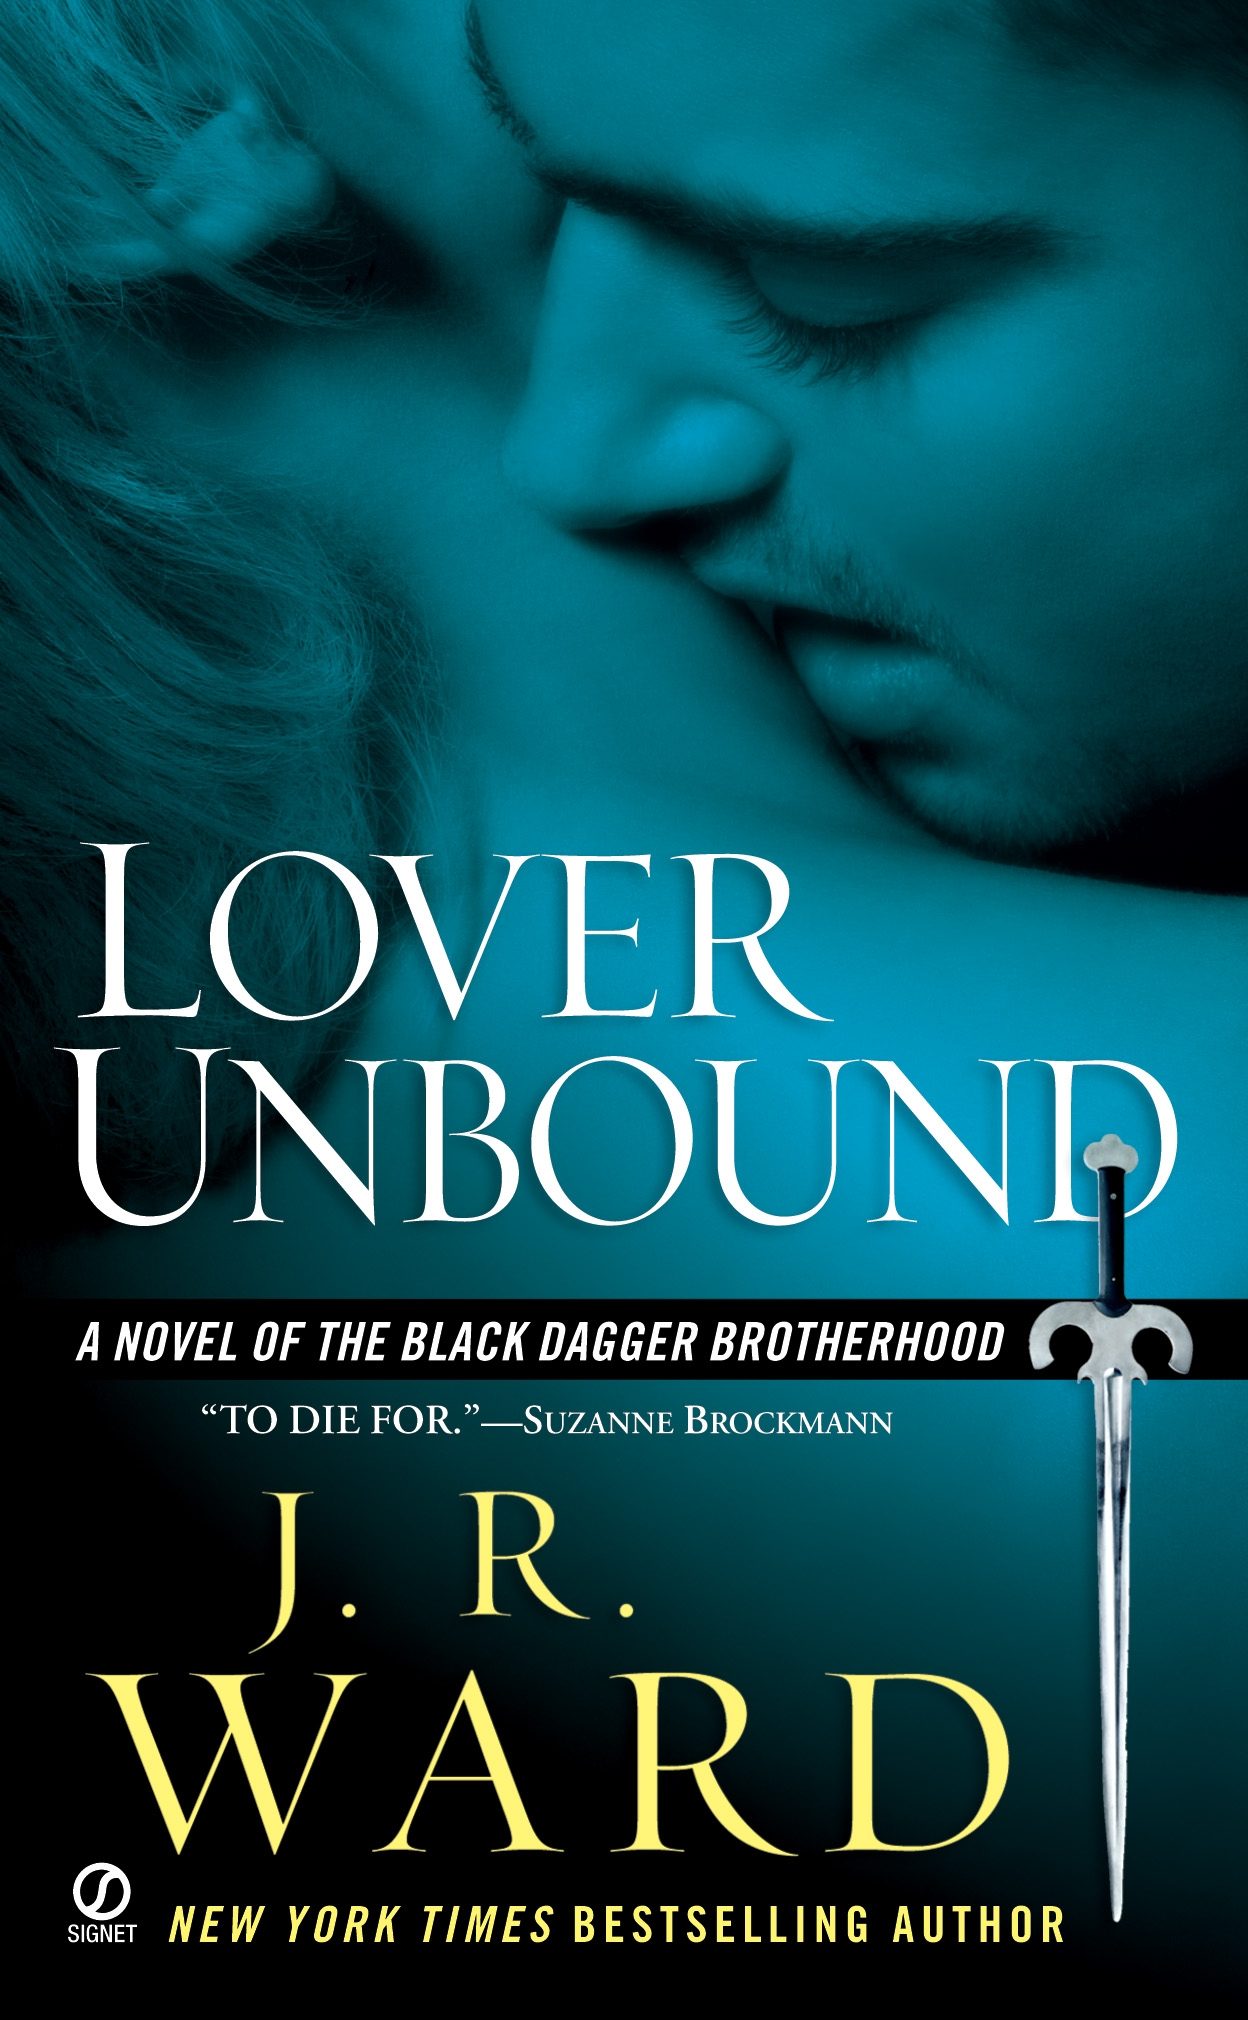 https://bookishtemptations.files.wordpress.com/2012/02/lover-unbound-j-r-ward.jpg